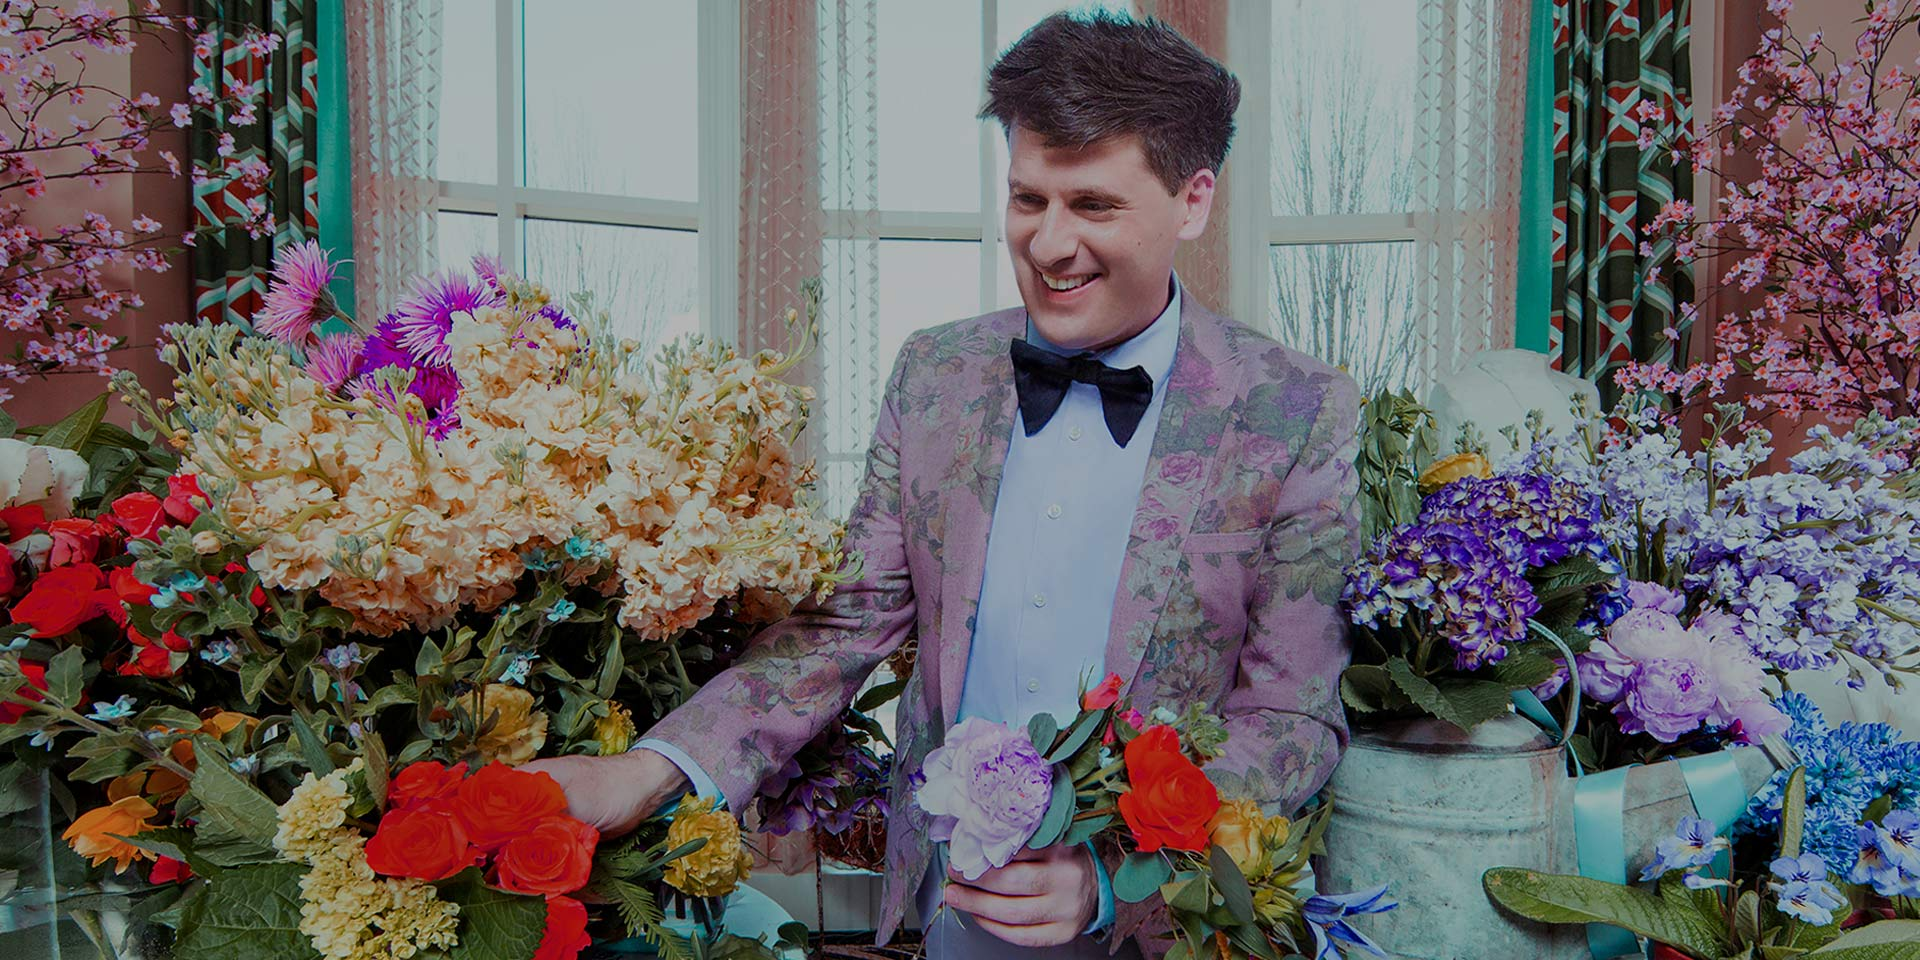 man in pastel suit and bowtie surrounded by flowers